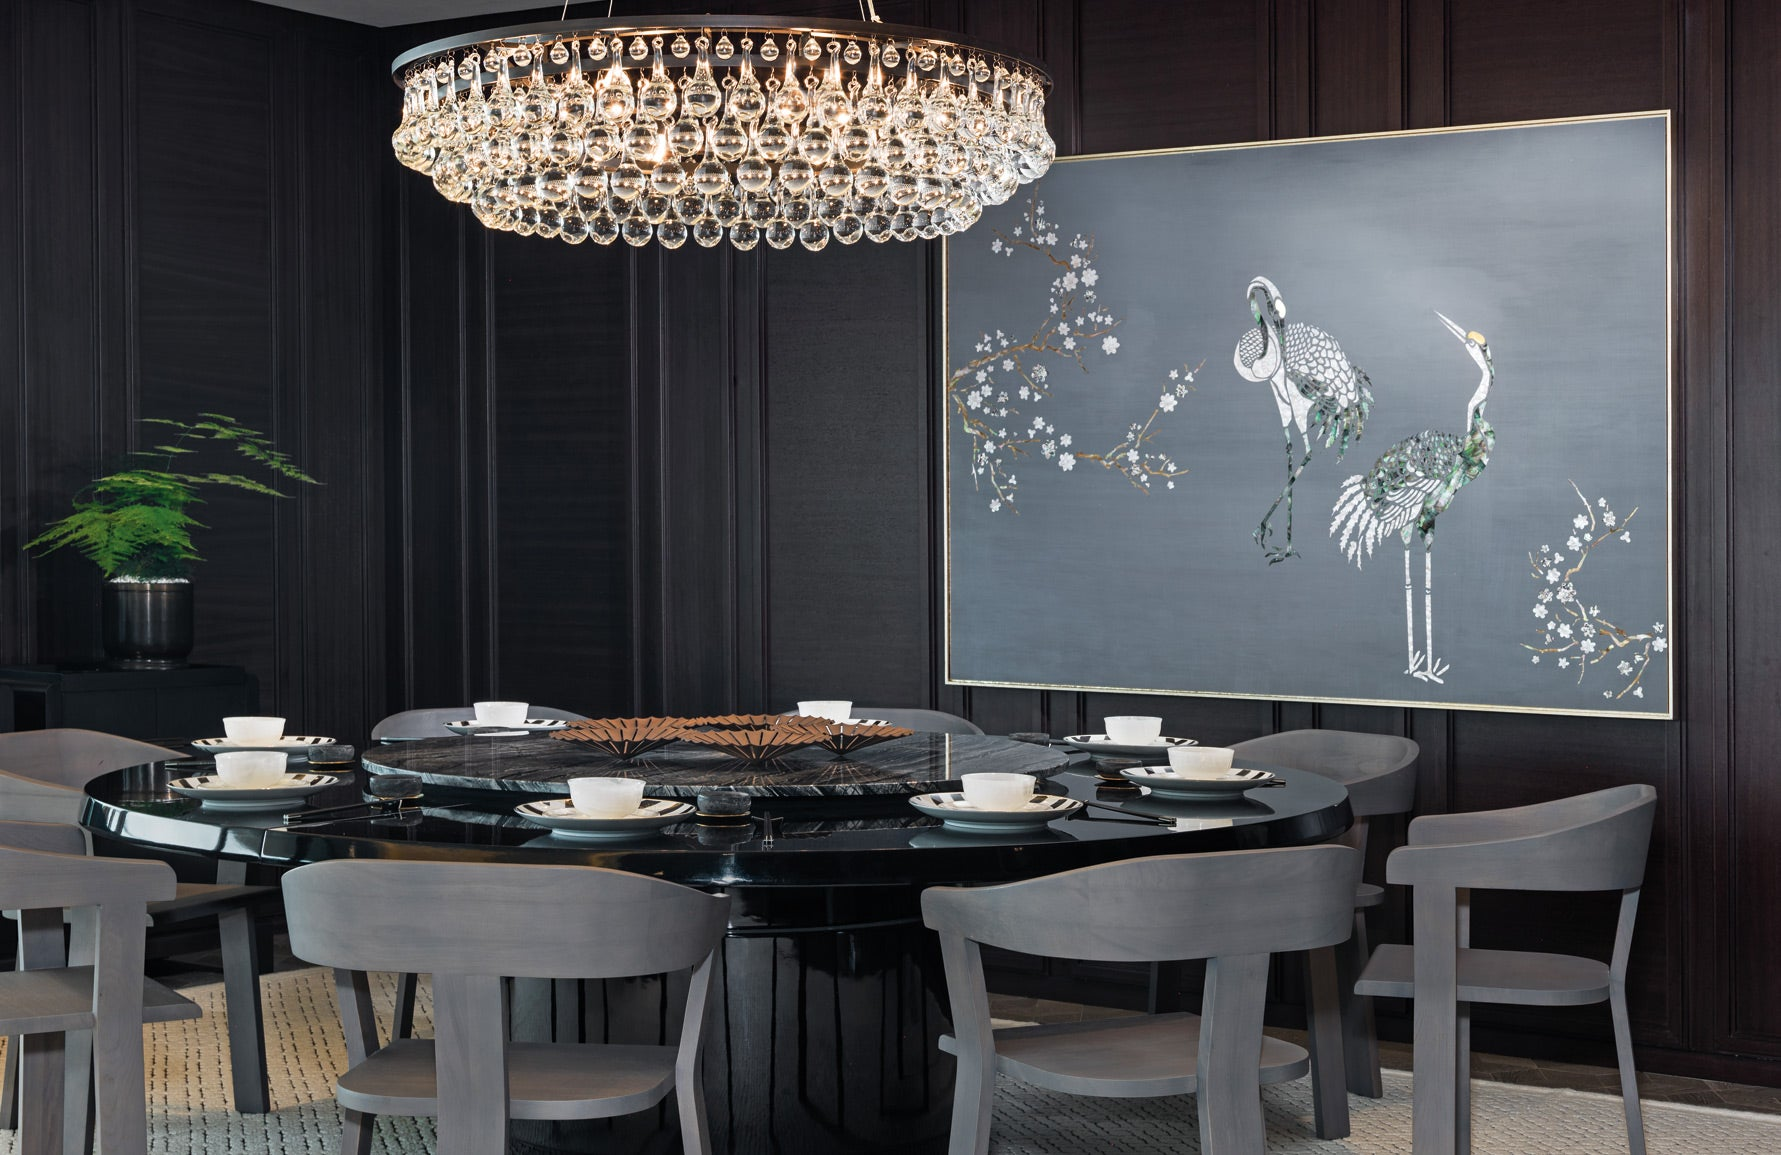 Luxury Dining Room Styles | Asian Dining Room | AB Concept | Read more in The Luxurist at LuxDeco.com.jpg